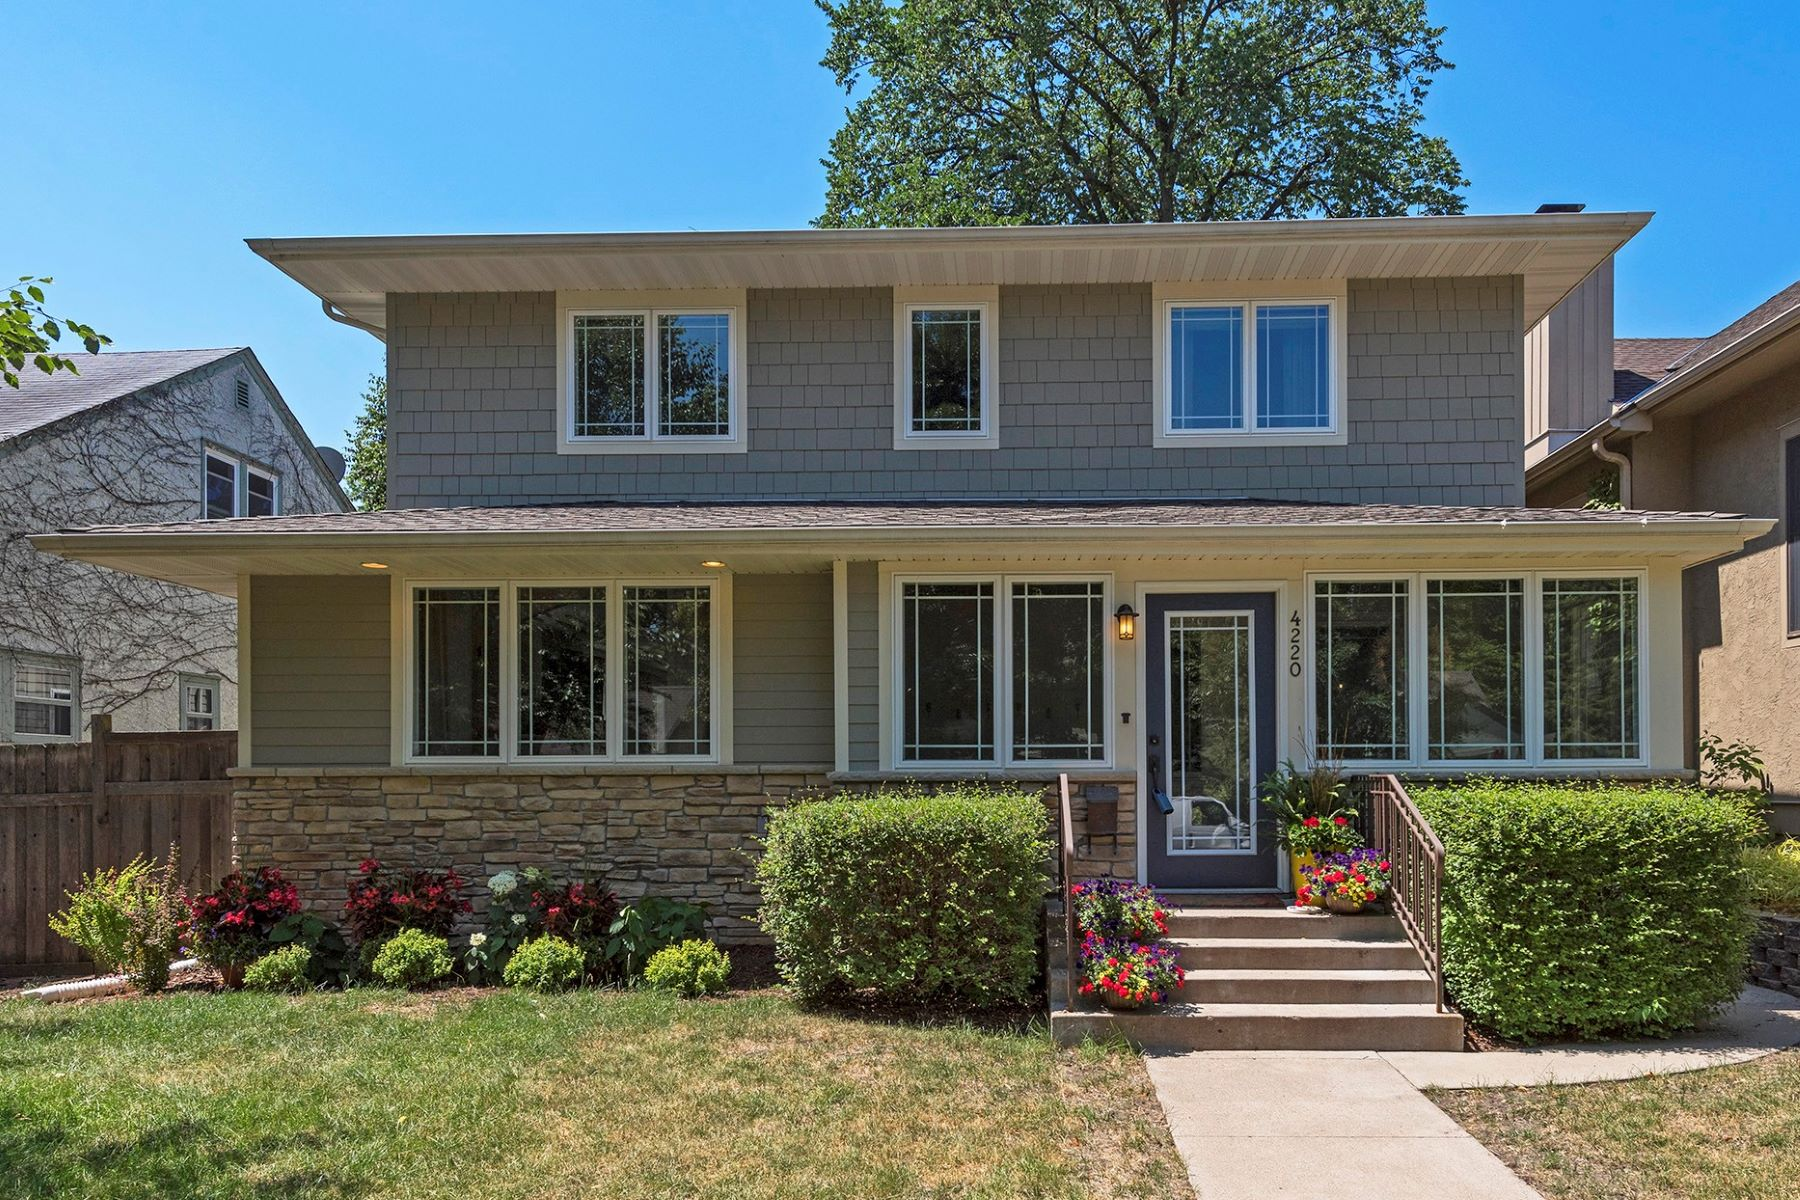 Single Family Home for Sale at 4220 Chowen Avenue South Linden Hills, Minneapolis, Minnesota, 55410 United States